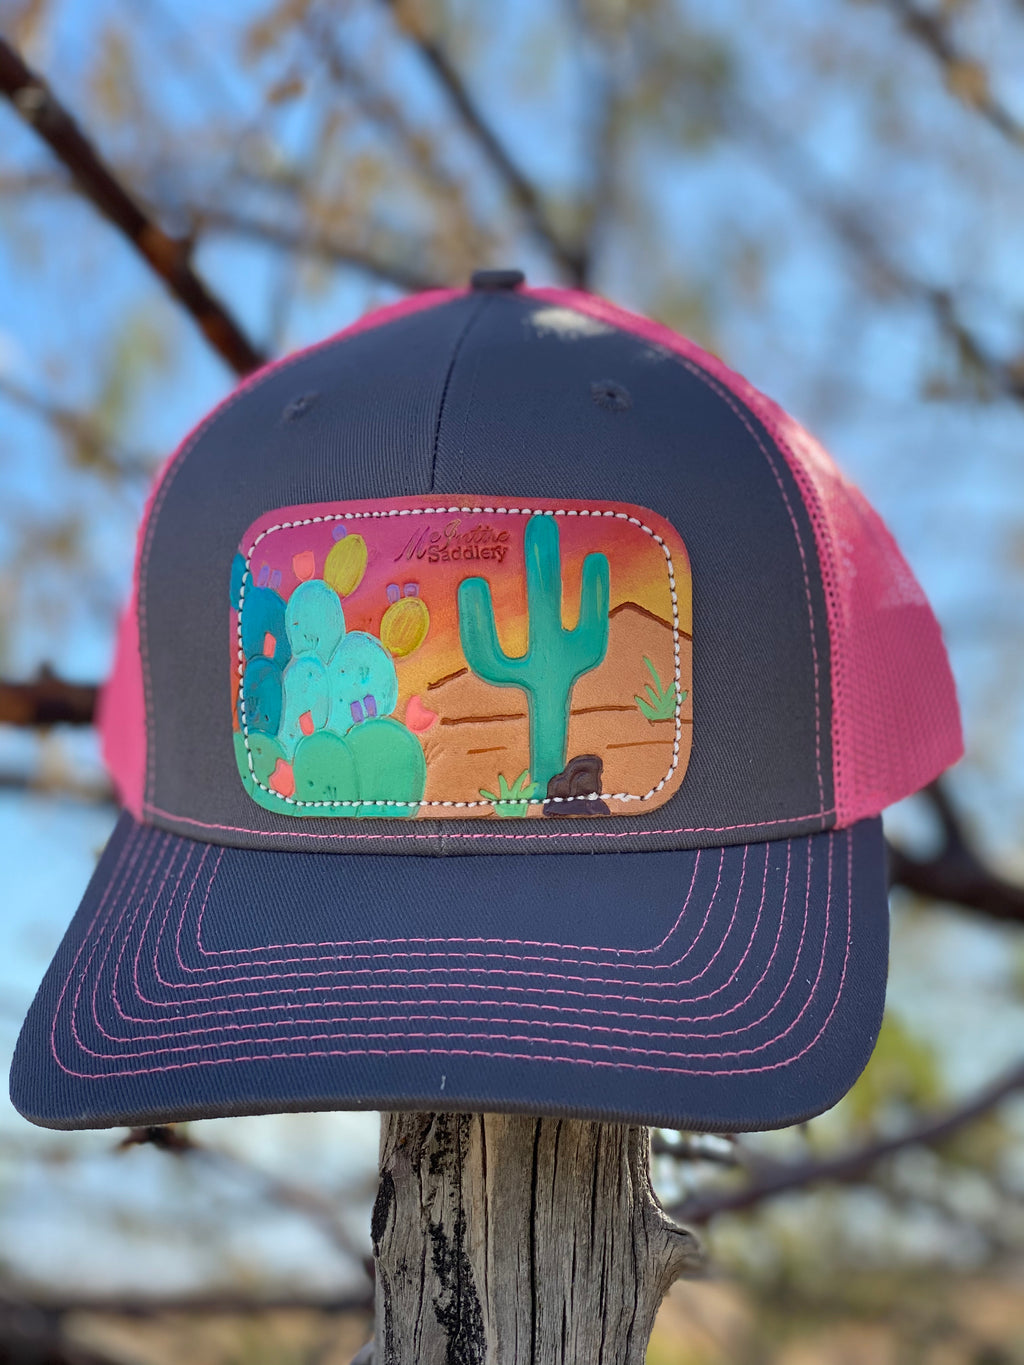 The Pink Cactus Leather Patch Cap